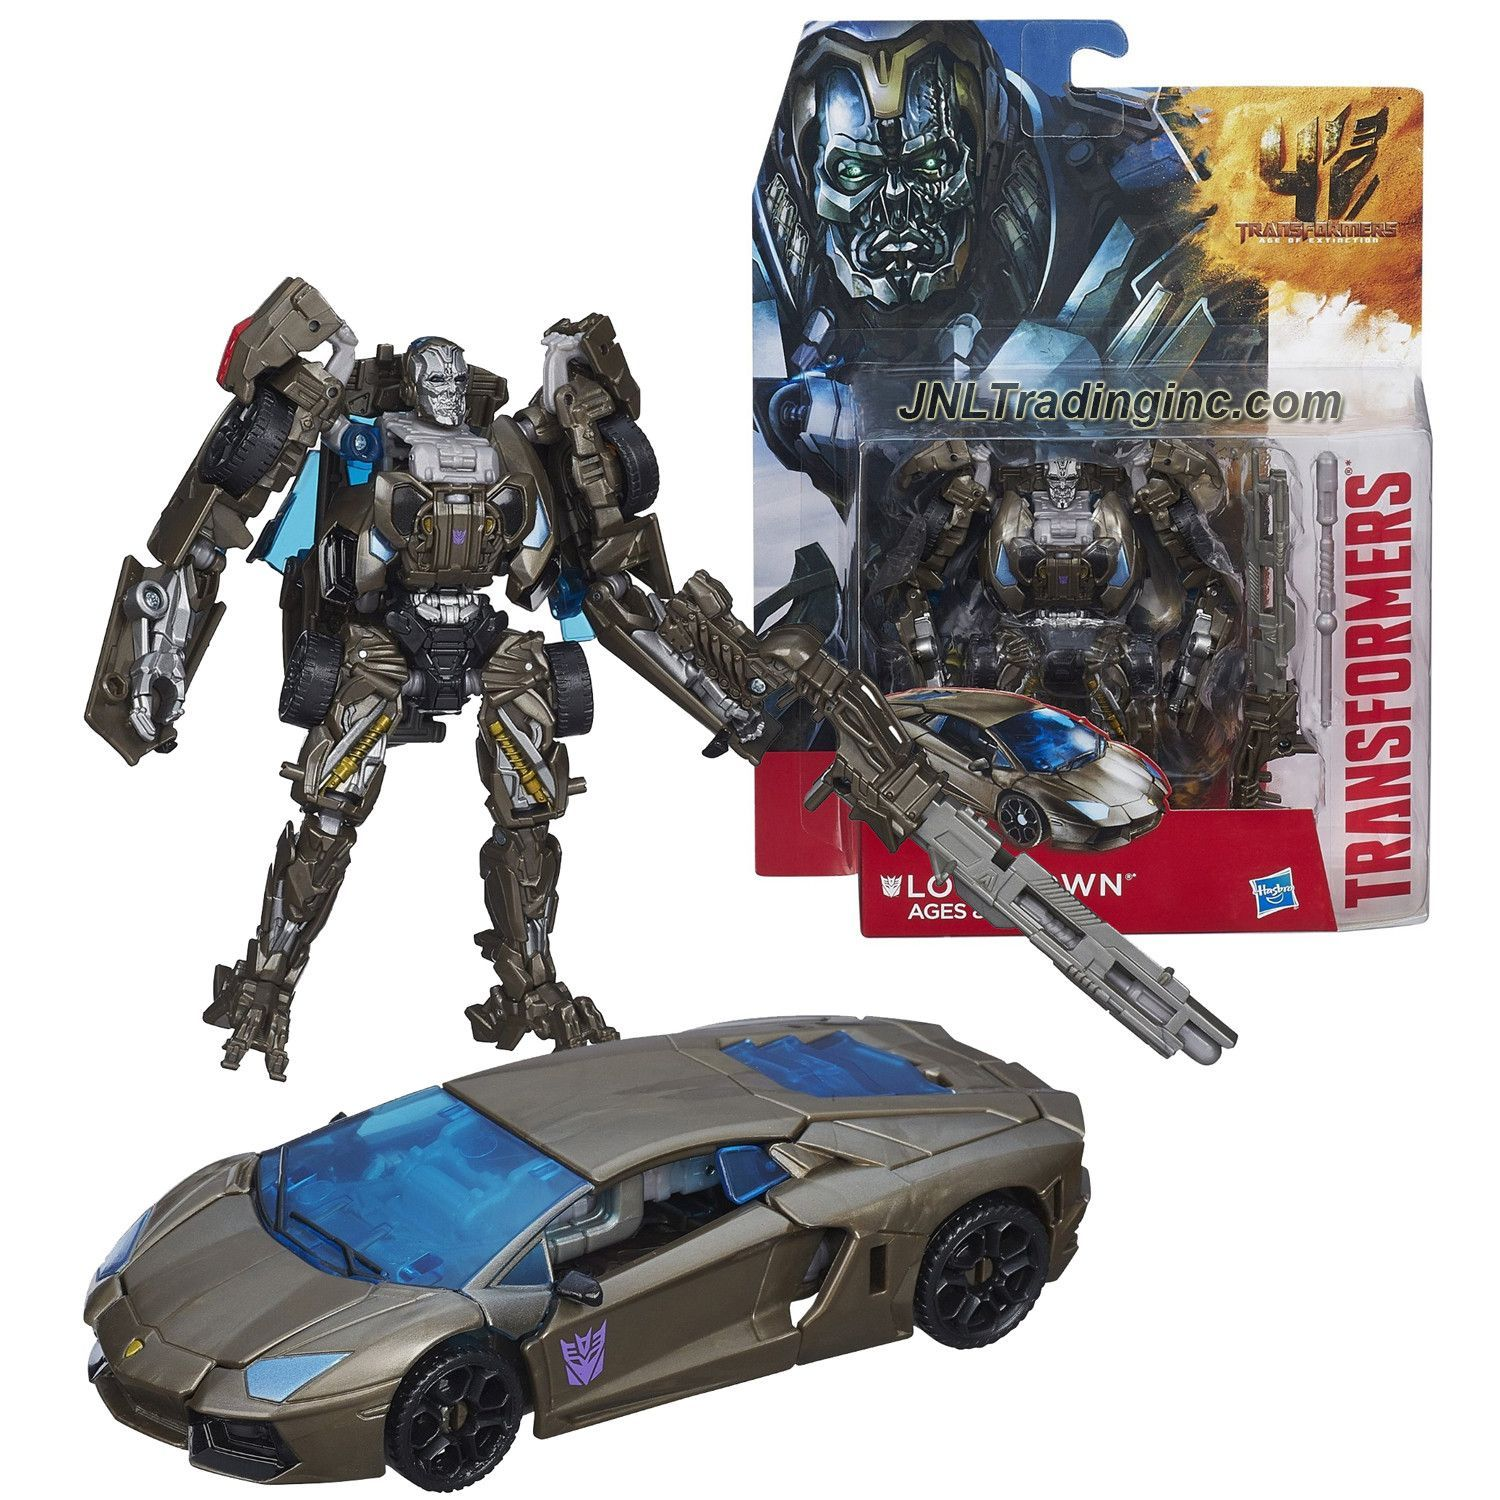 transformers movie age of extinction series deluxe class 5-1/2